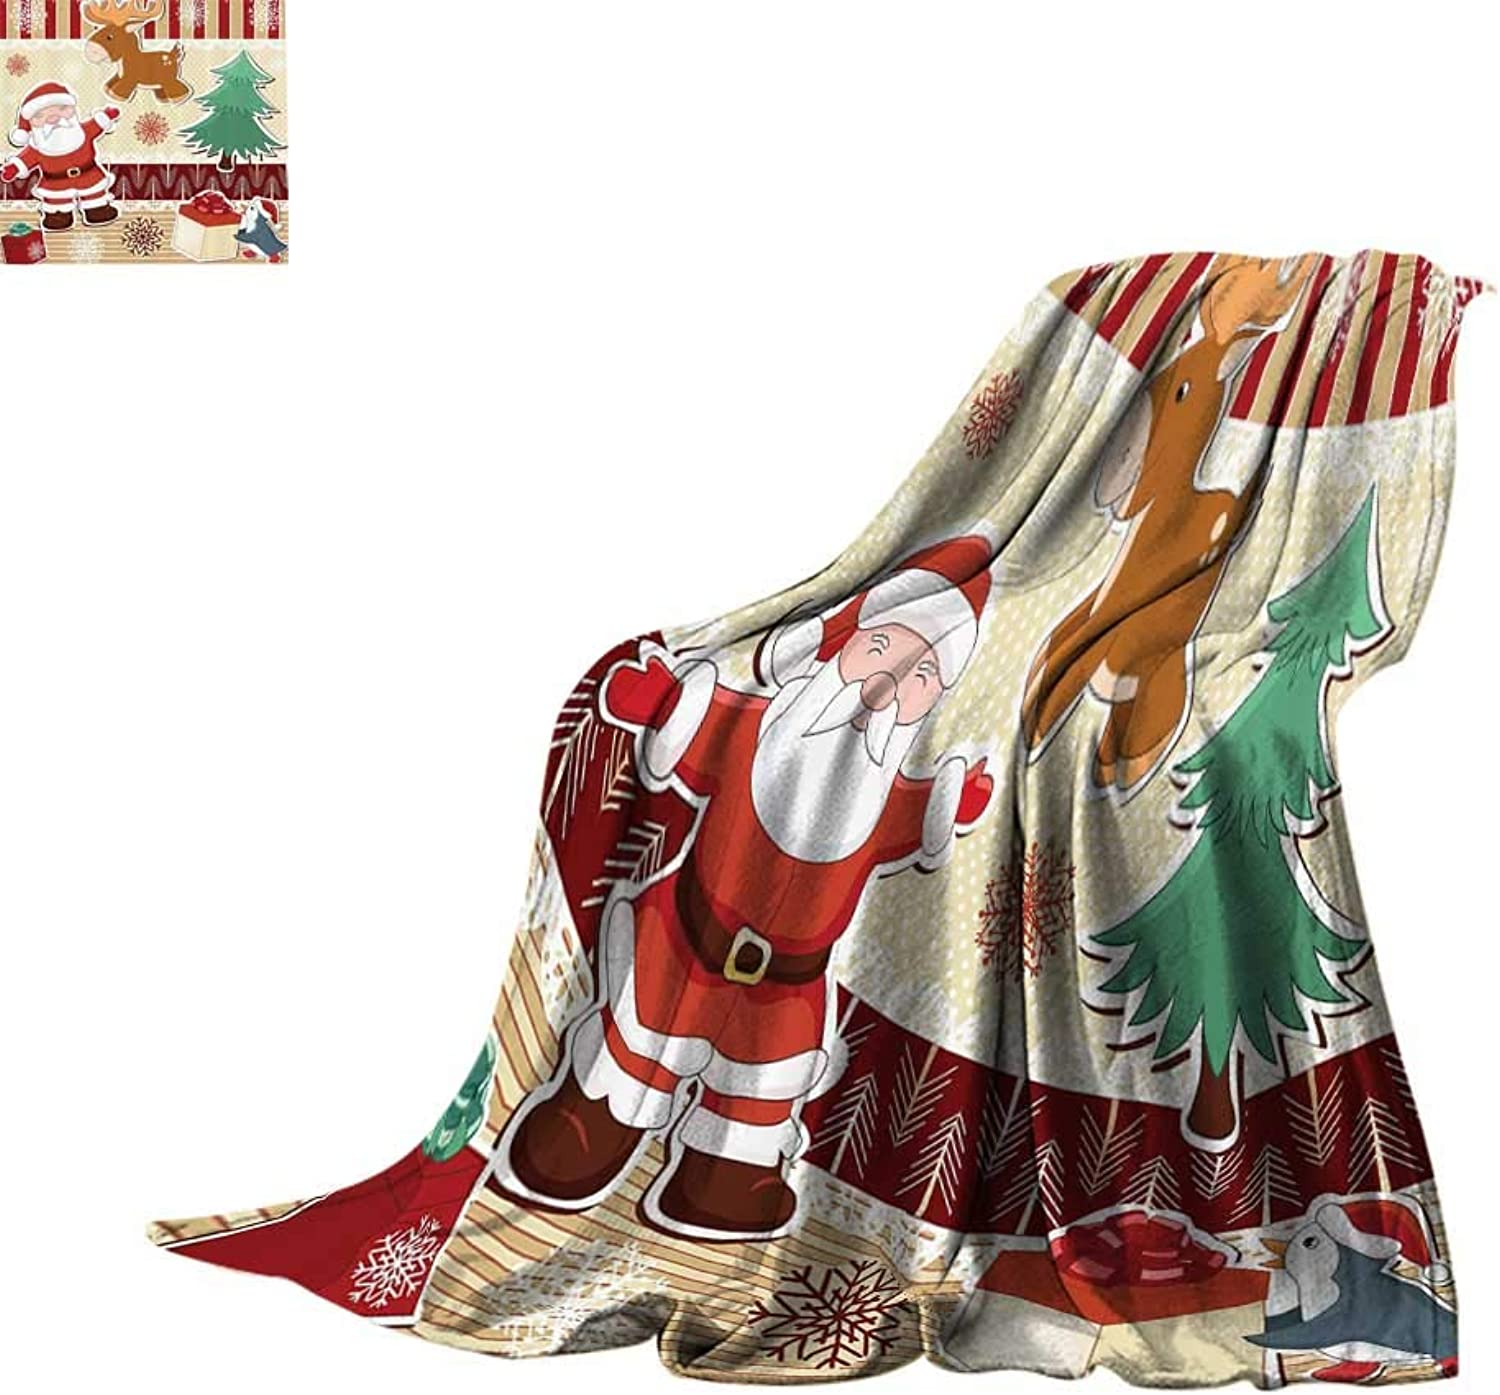 Throw Blanket Christmas Decorations Collection,Cute Santa with Reindeer and Penguin Toys Snow Celebration Kids Room Design Patterns,Multi Lightweight Thermal Blankets Bed or Couch 60 x35